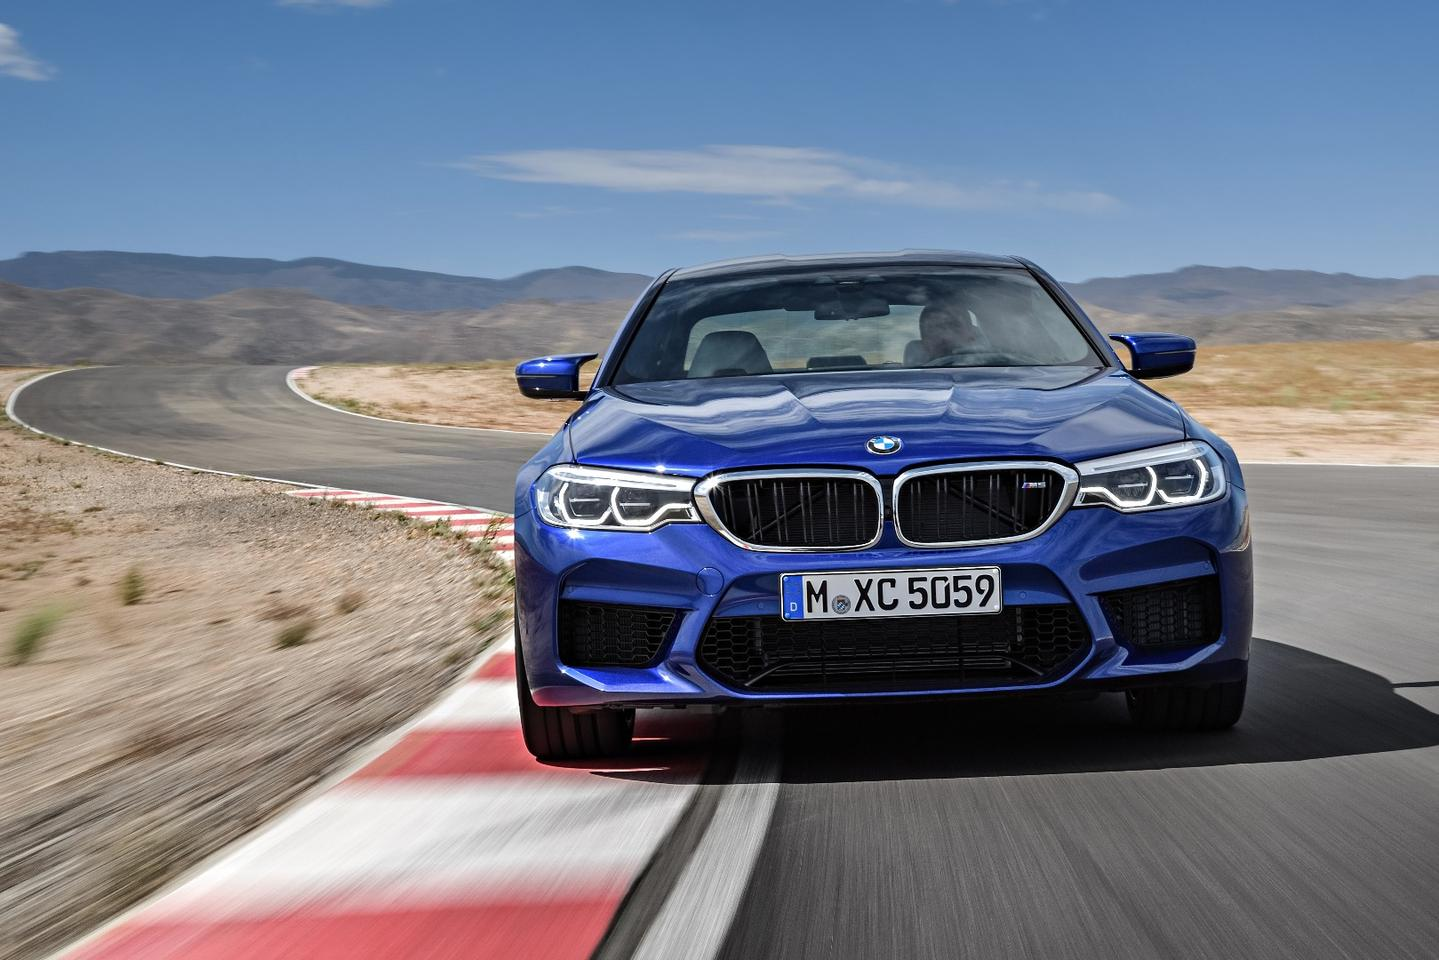 The new M5 is powered by a twin-turbo V8 making 600 hp